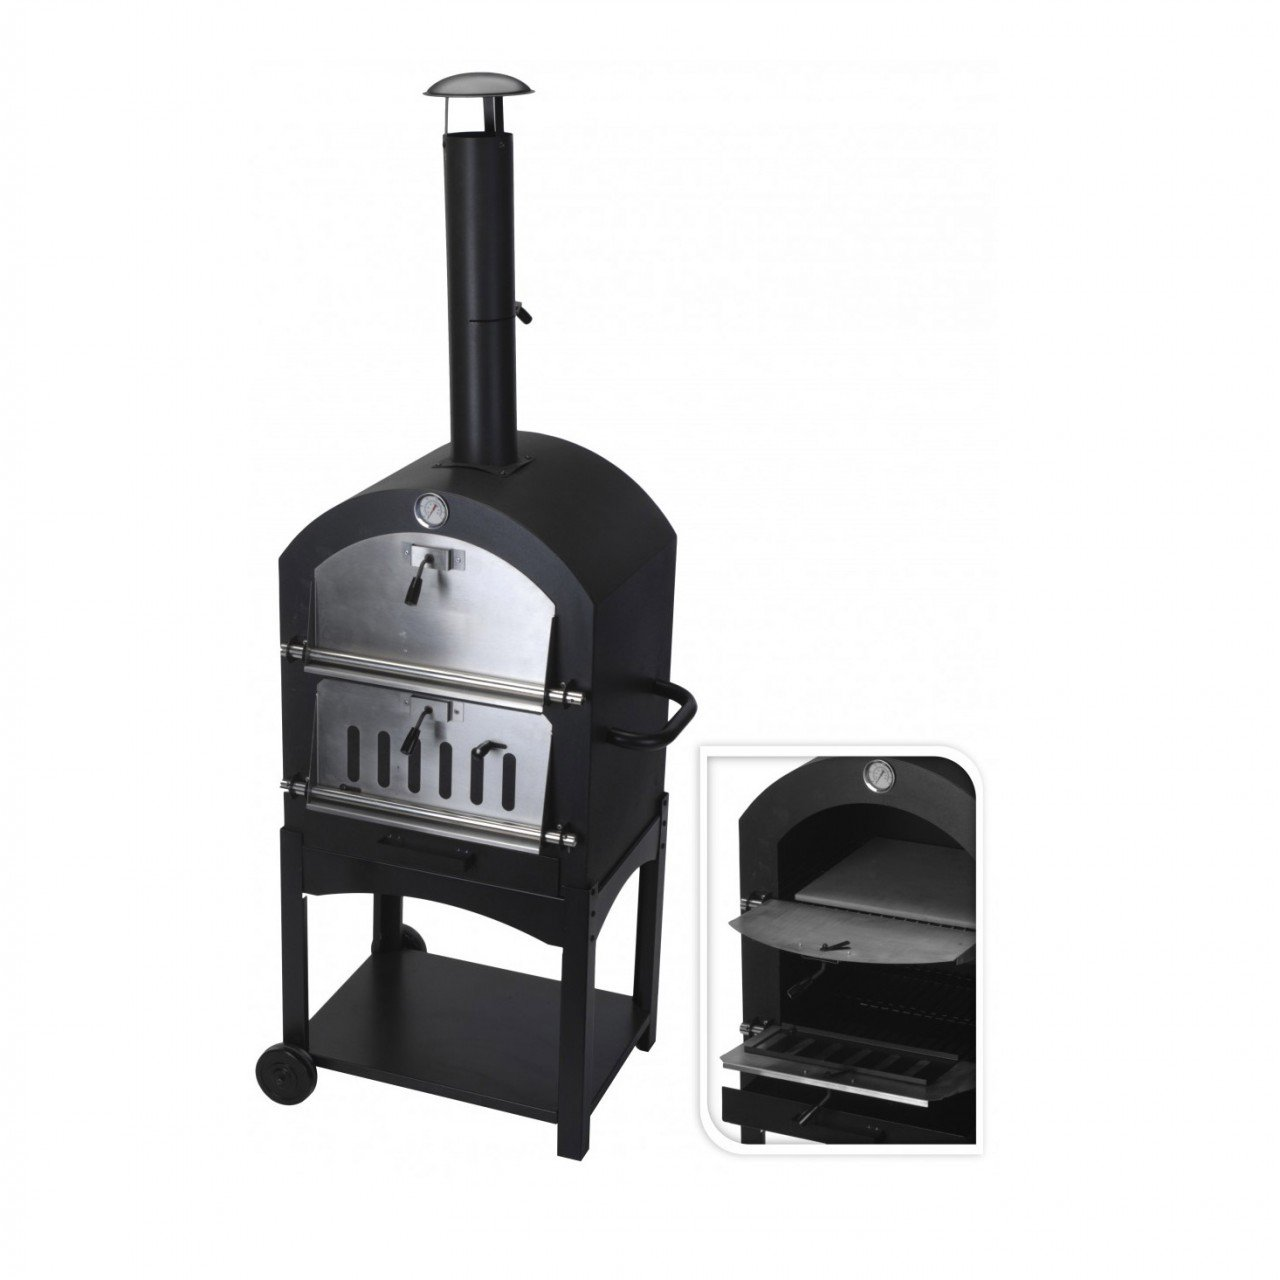 New Large Charcoal Barbecue Steel Outdoor Garden Pizza Cooker Oven BBQ And Smoker Koopman E12300070